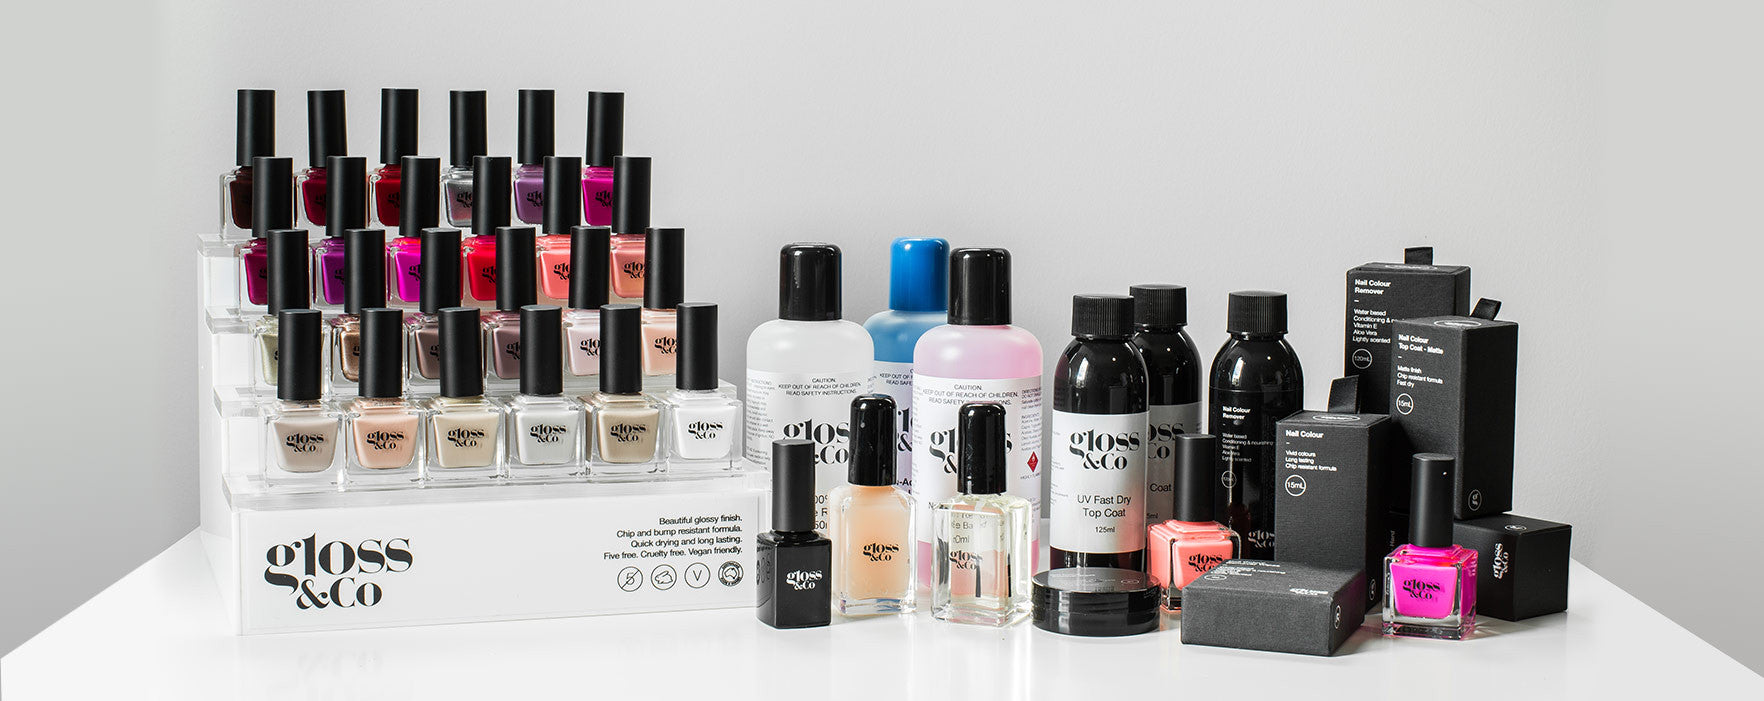 Become a stockist for Gloss & Co